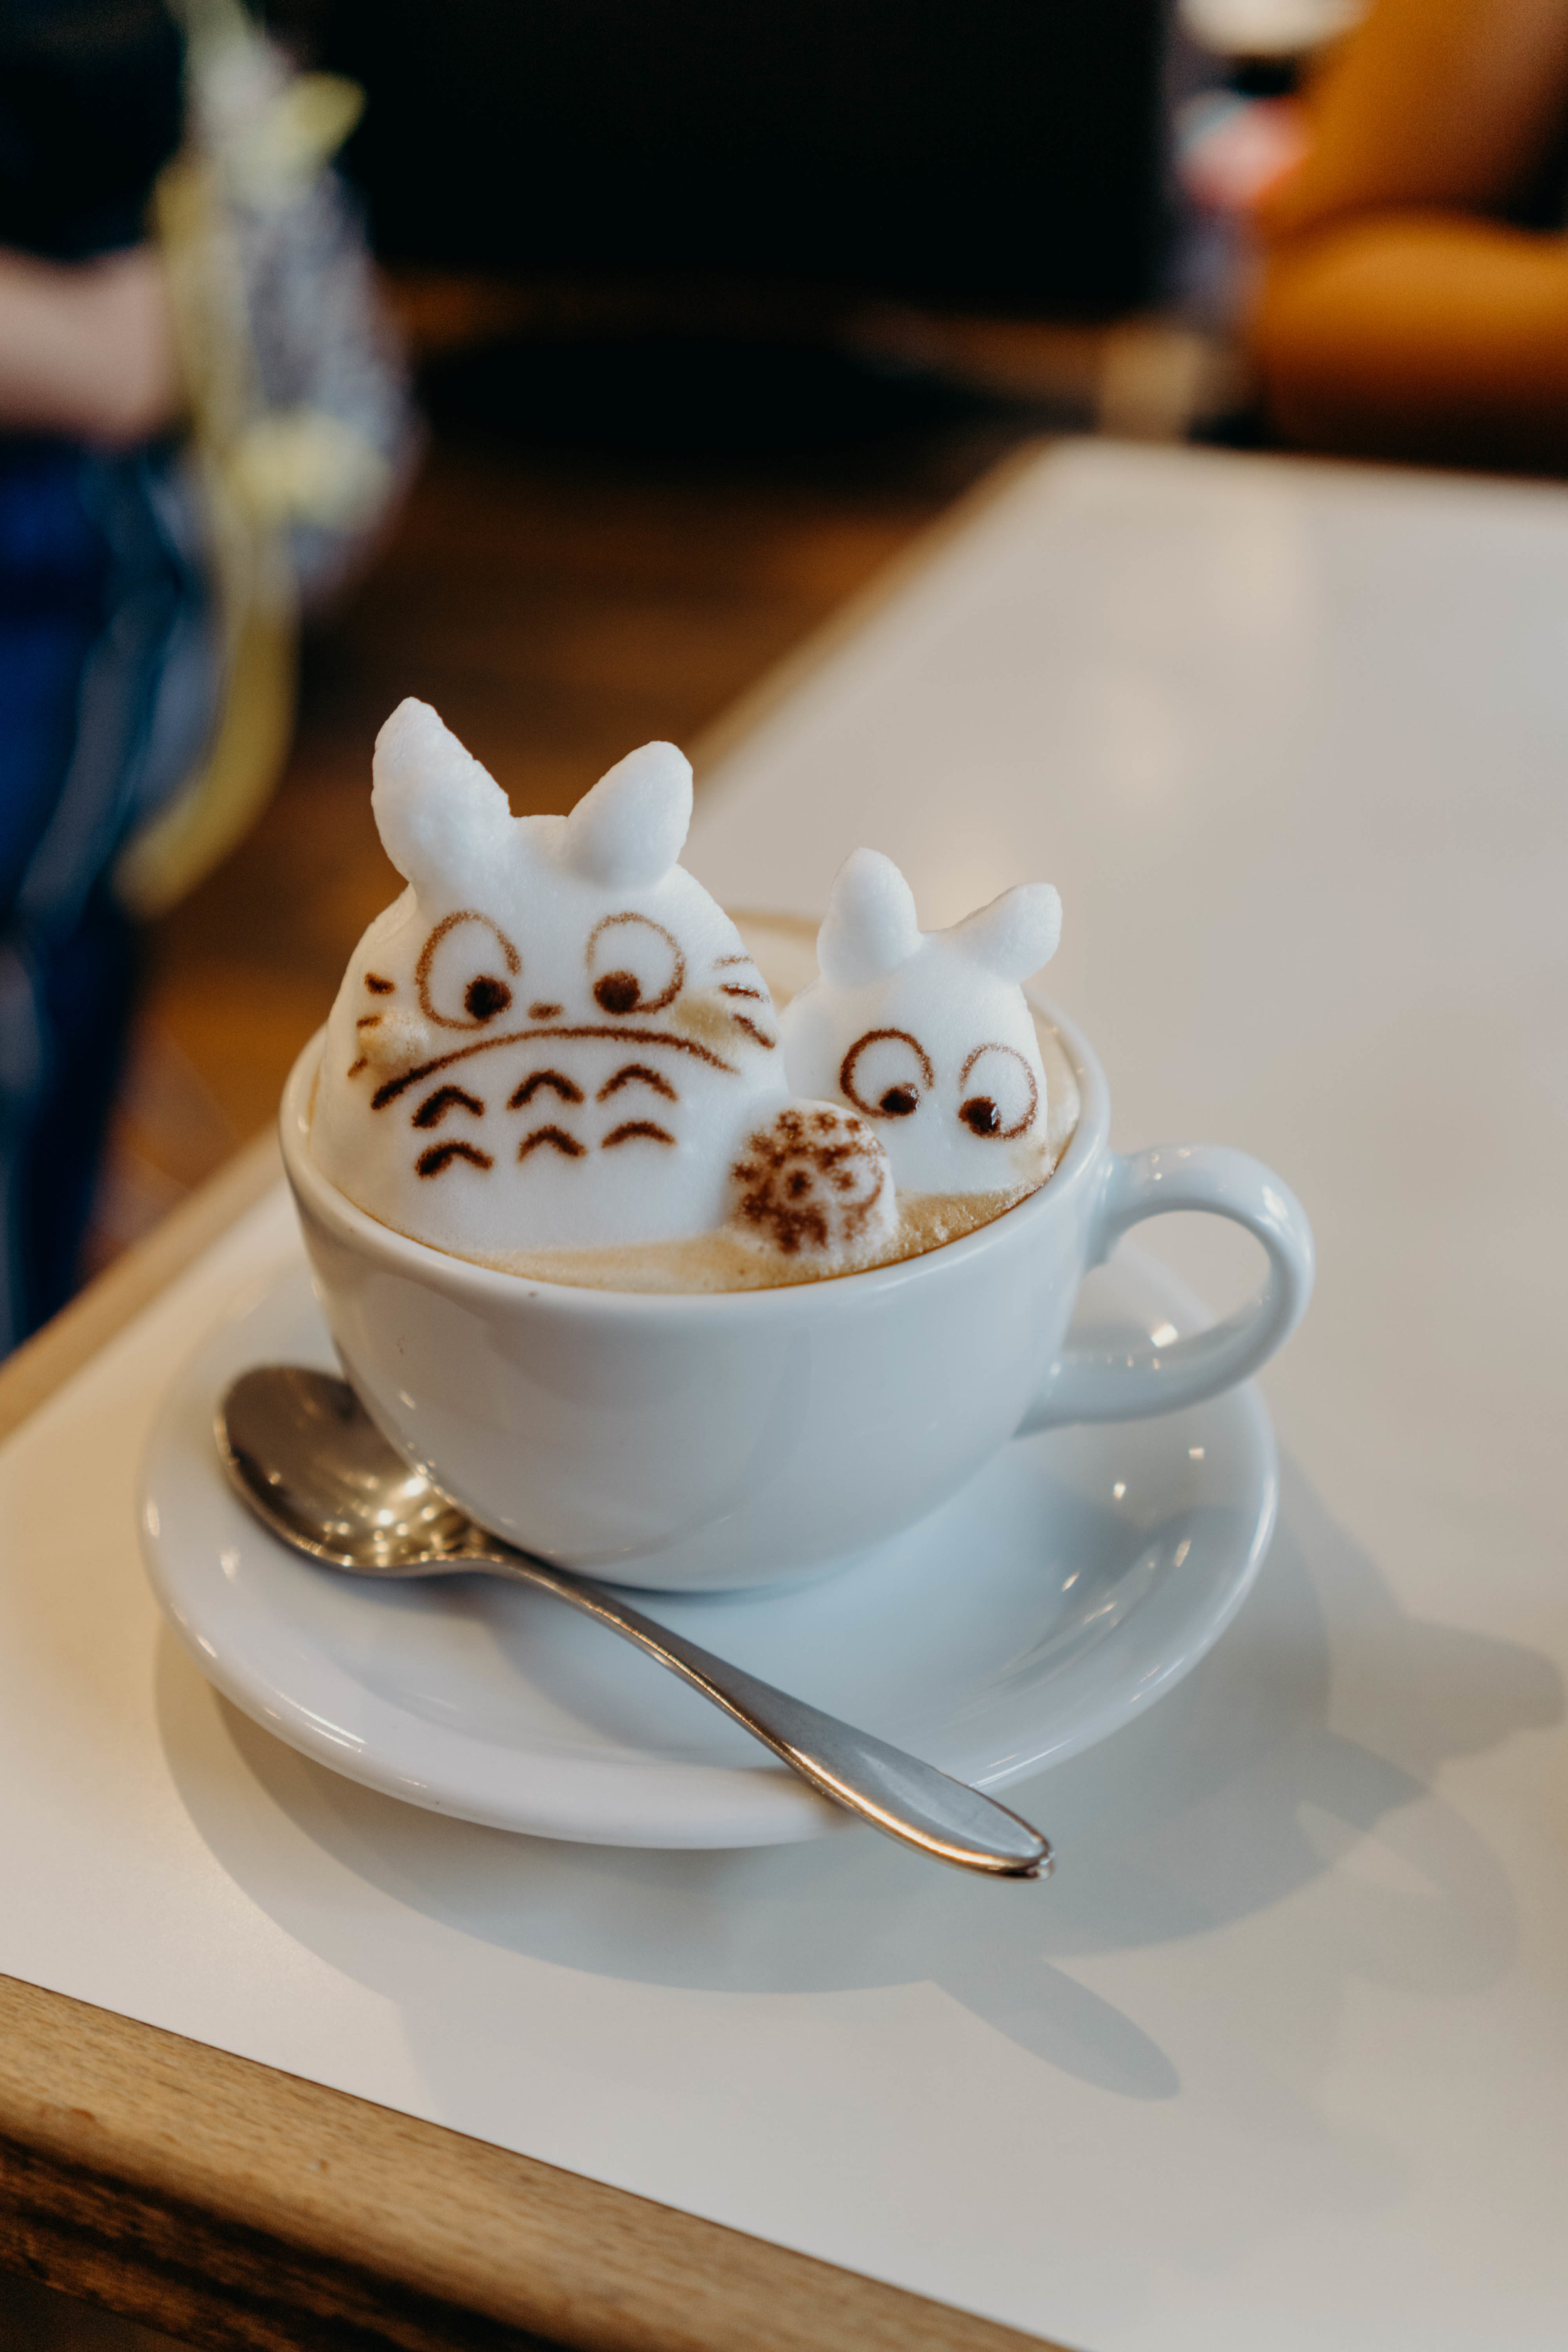 A Three-Day Girls' Trip to Tokyo | On the Street Where We Live ( aretherelilactrees.com )  Reissue, cafe, 3D latte art, My Neighbor Totoro, Totoro latte art, Tokyo, Japan